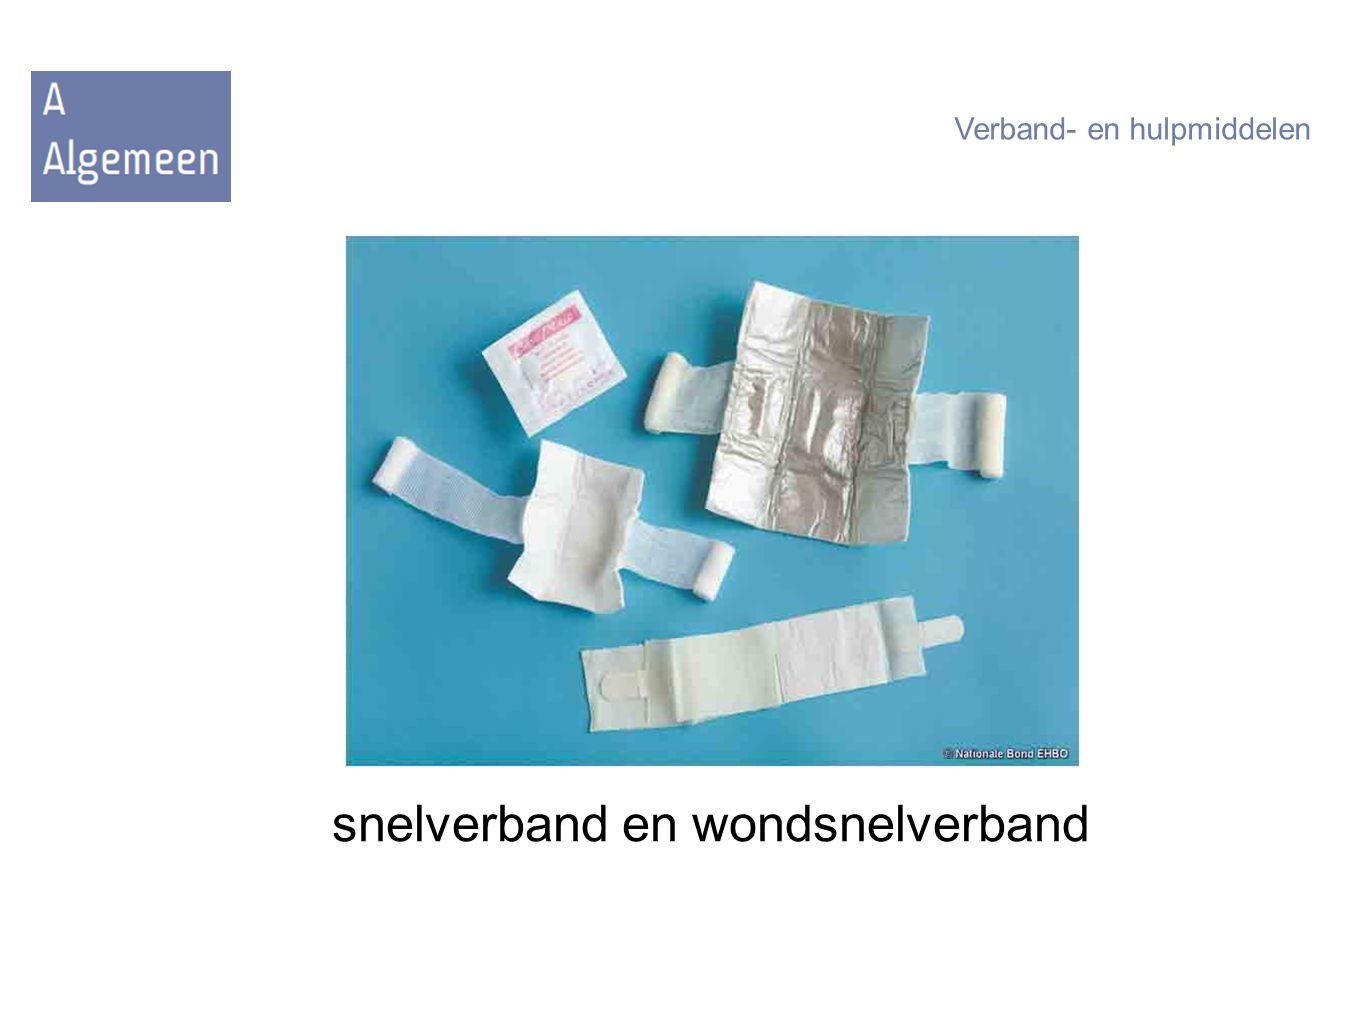 snelverband en wondsnelverband